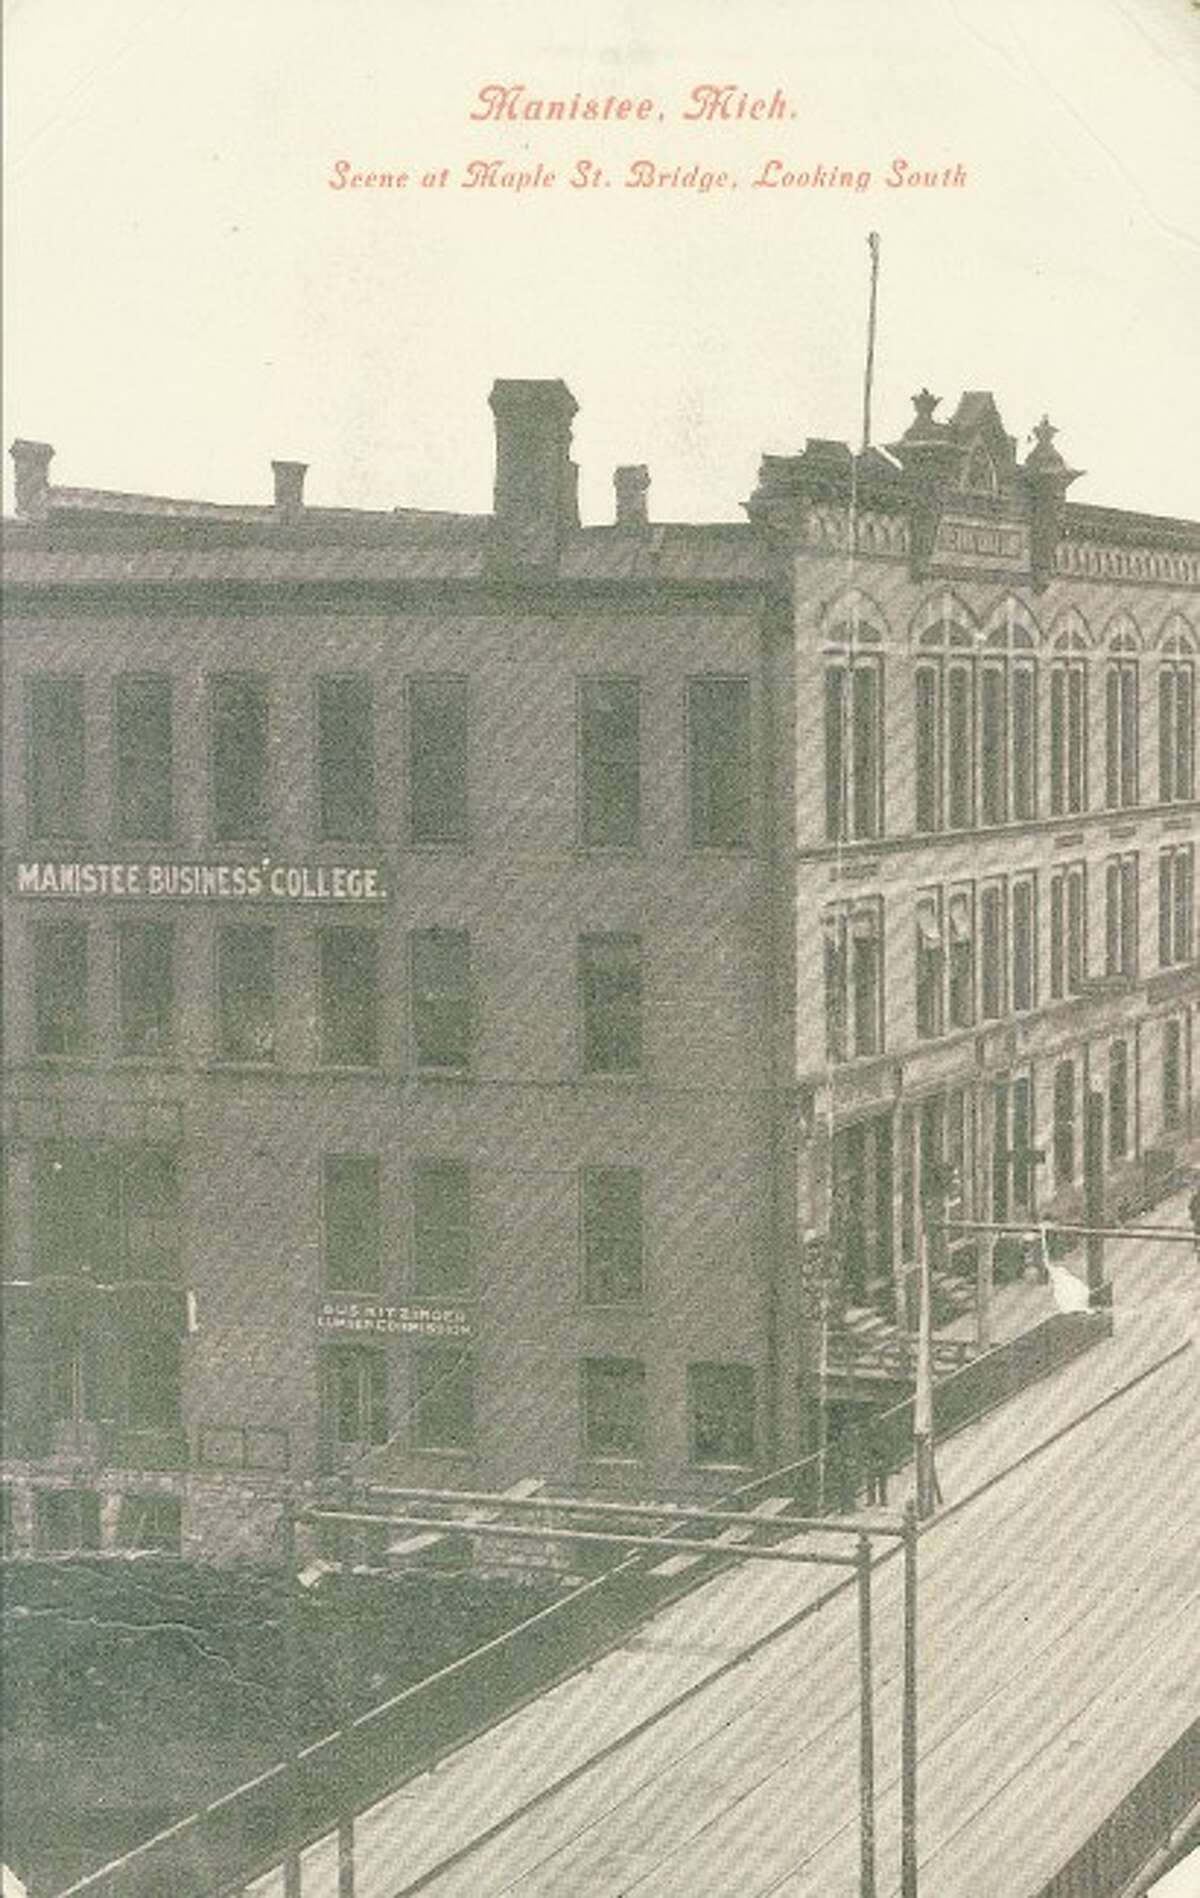 The Manistee Business College is shown in this postcard depiction in the early 1900s. The view is from the Maple Street Bridge looking south.